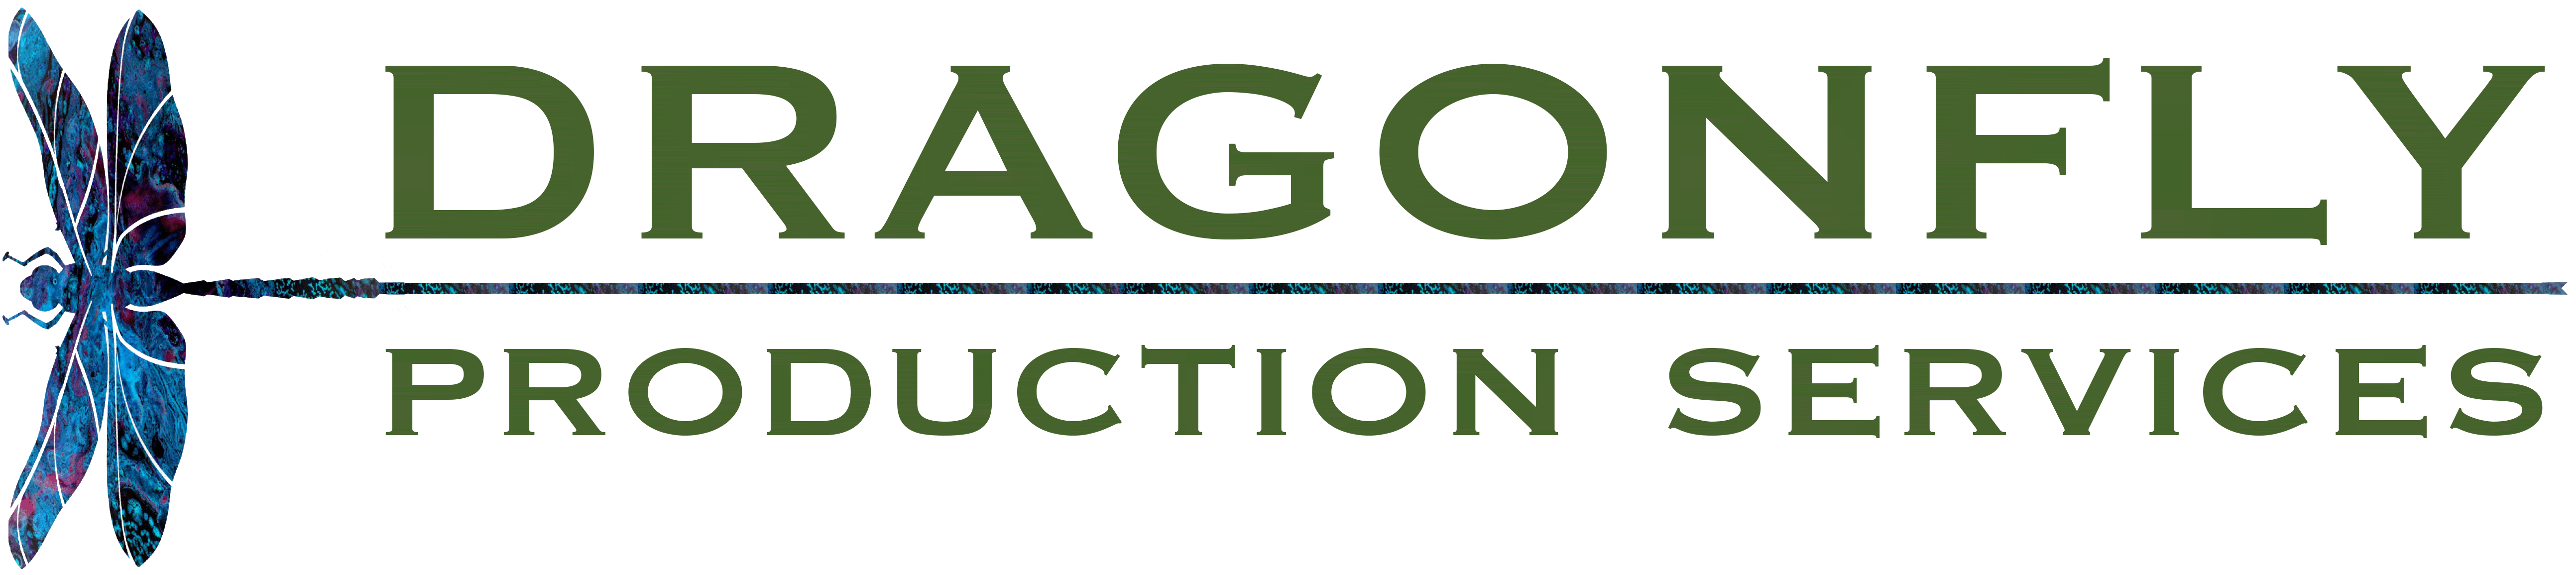 Dragonfly Production Services